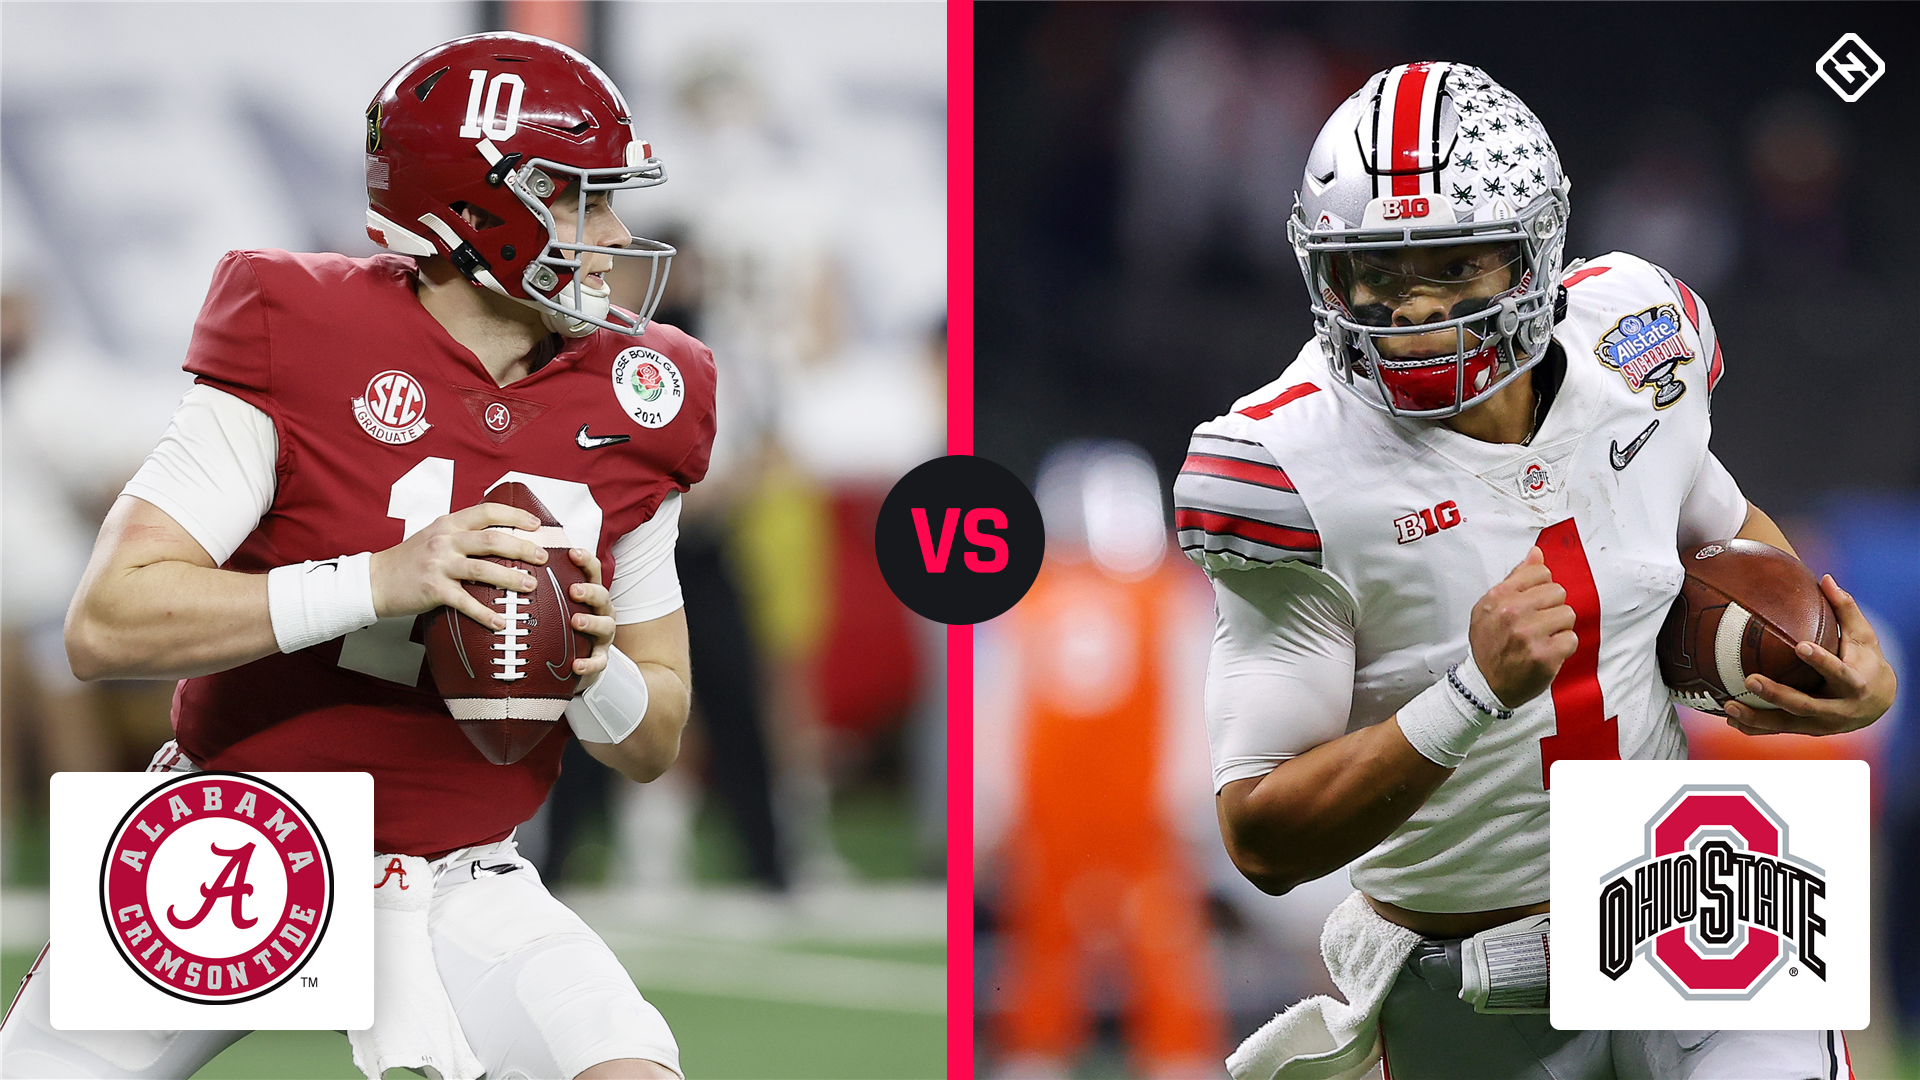 Alabama vs. Ohio State odds, predictions, betting trends for College Football Playoff championship